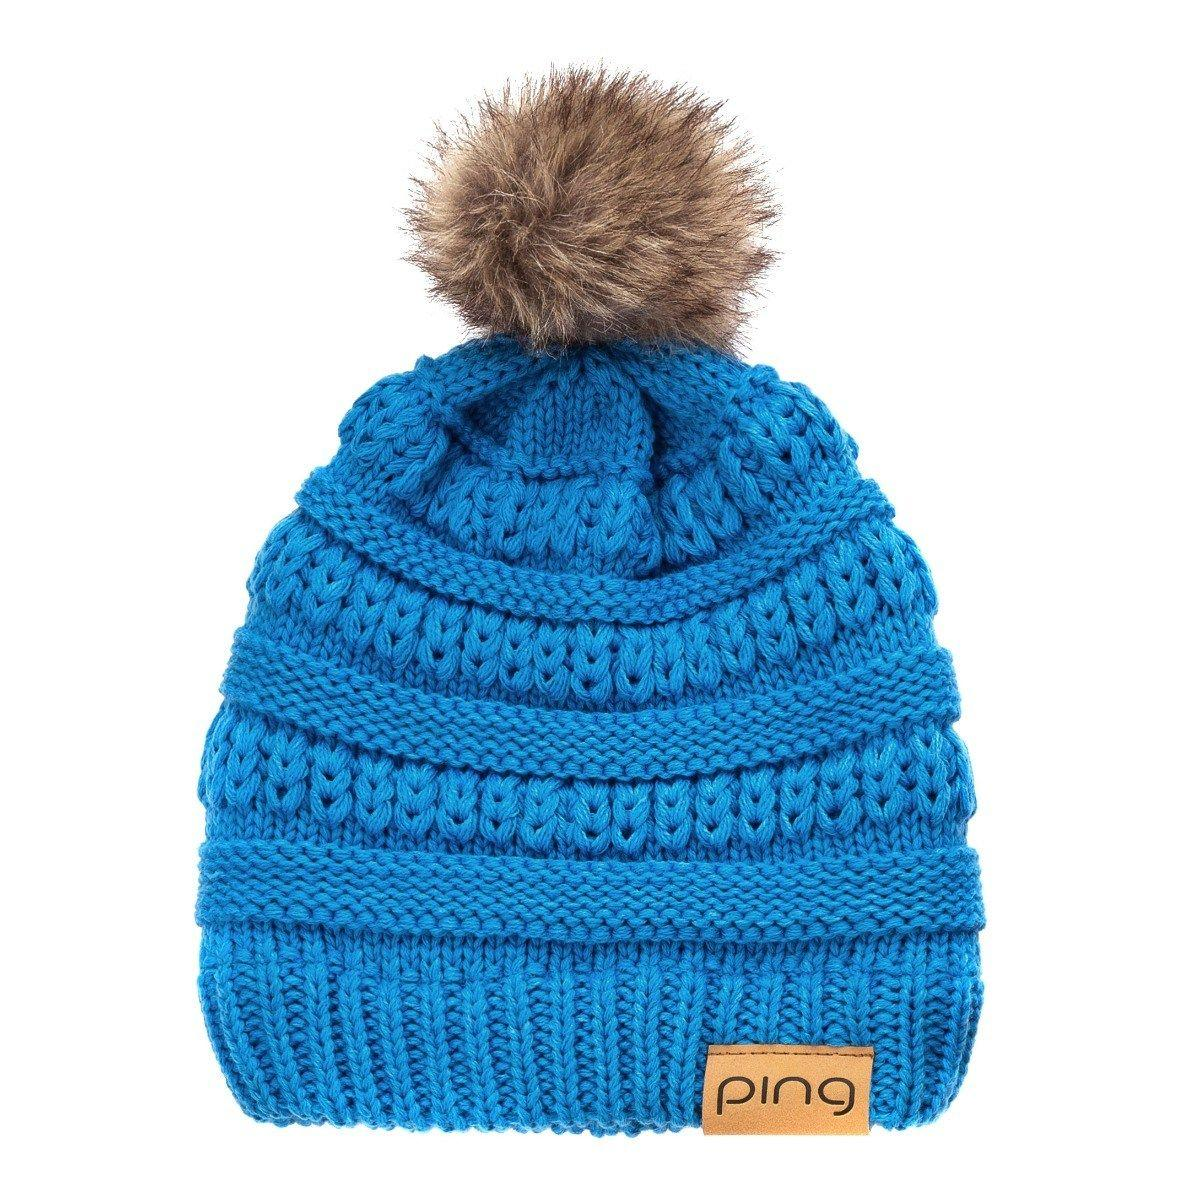 Blue Cable Bobble Hat